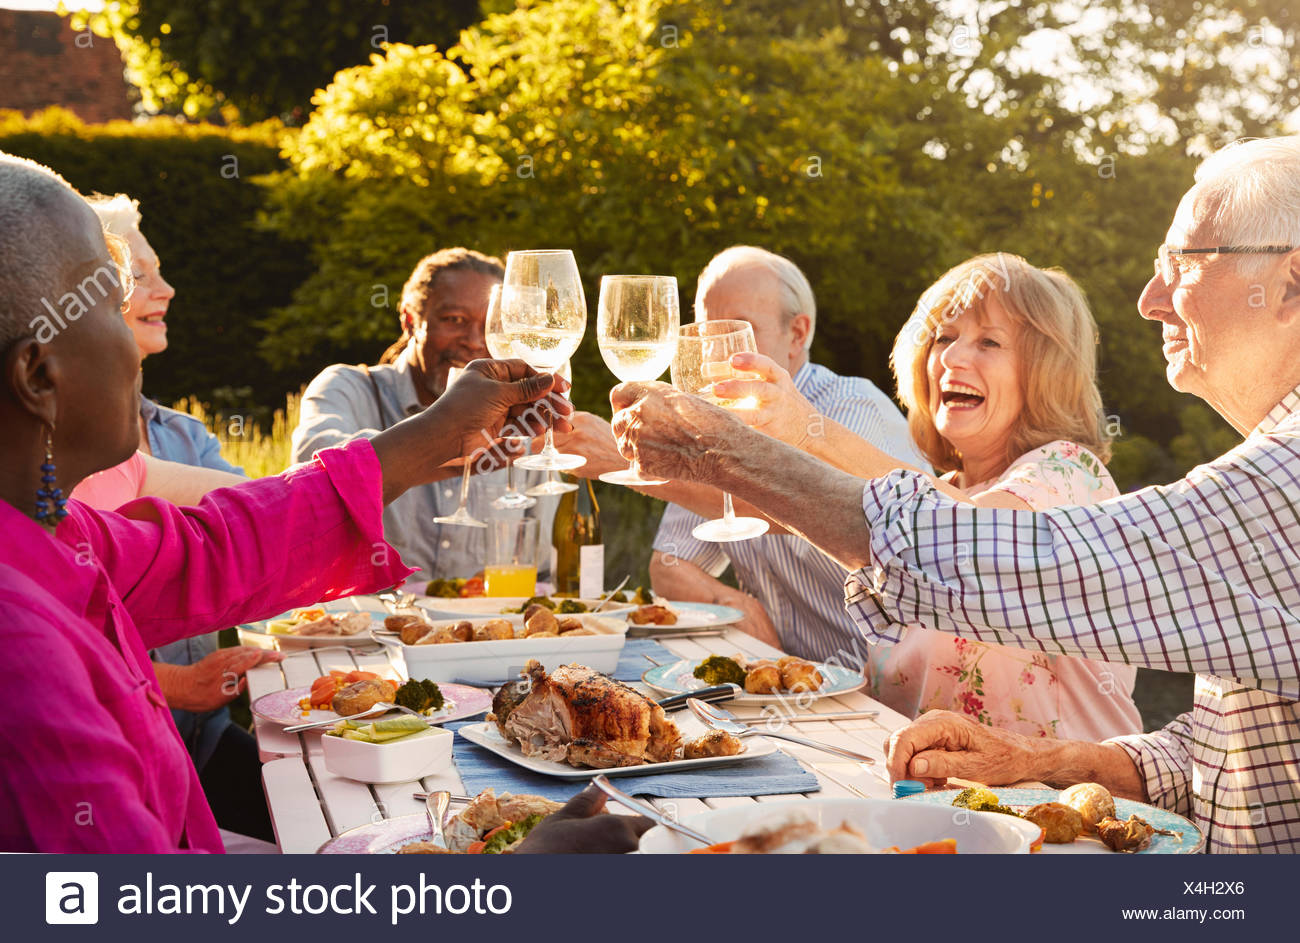 Group Of Senior Friends Making A Toast At Outdoor Dinner Party - Stock Image